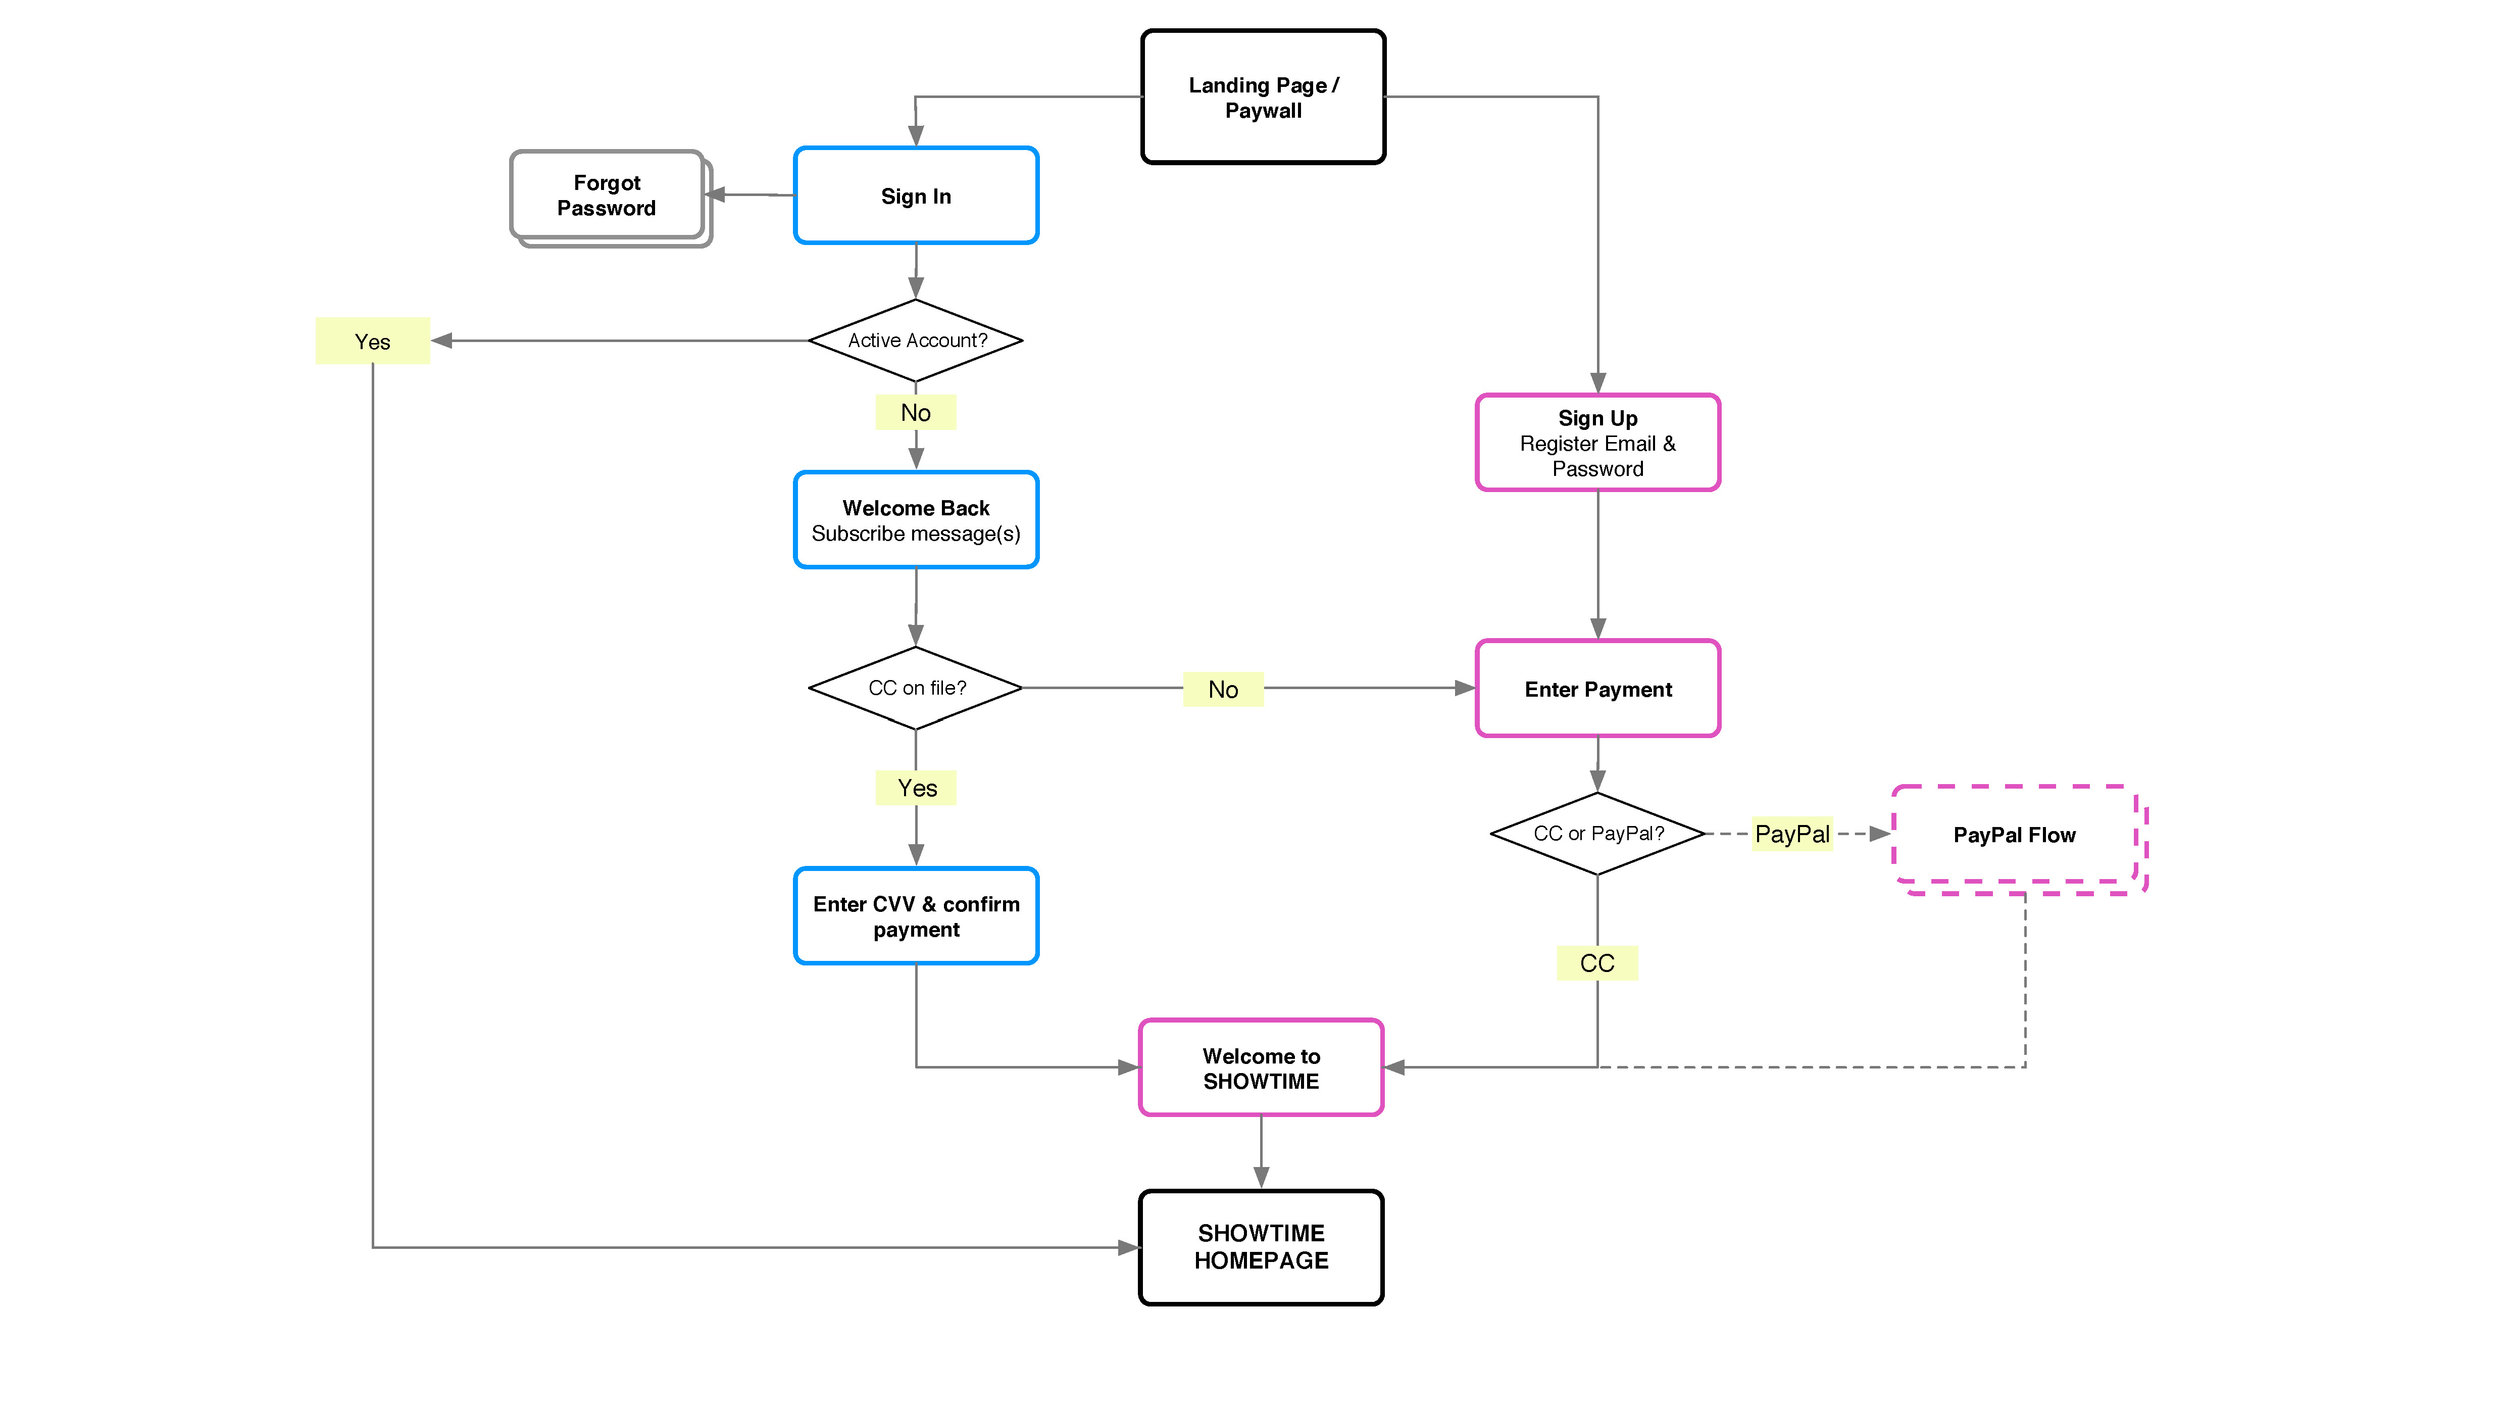 User Flow Charts - Outlined possible user flows and decision points for new trial starts, as well as subscription restarts, across all platforms  — web, native mobile, streaming TVs and smart TVs